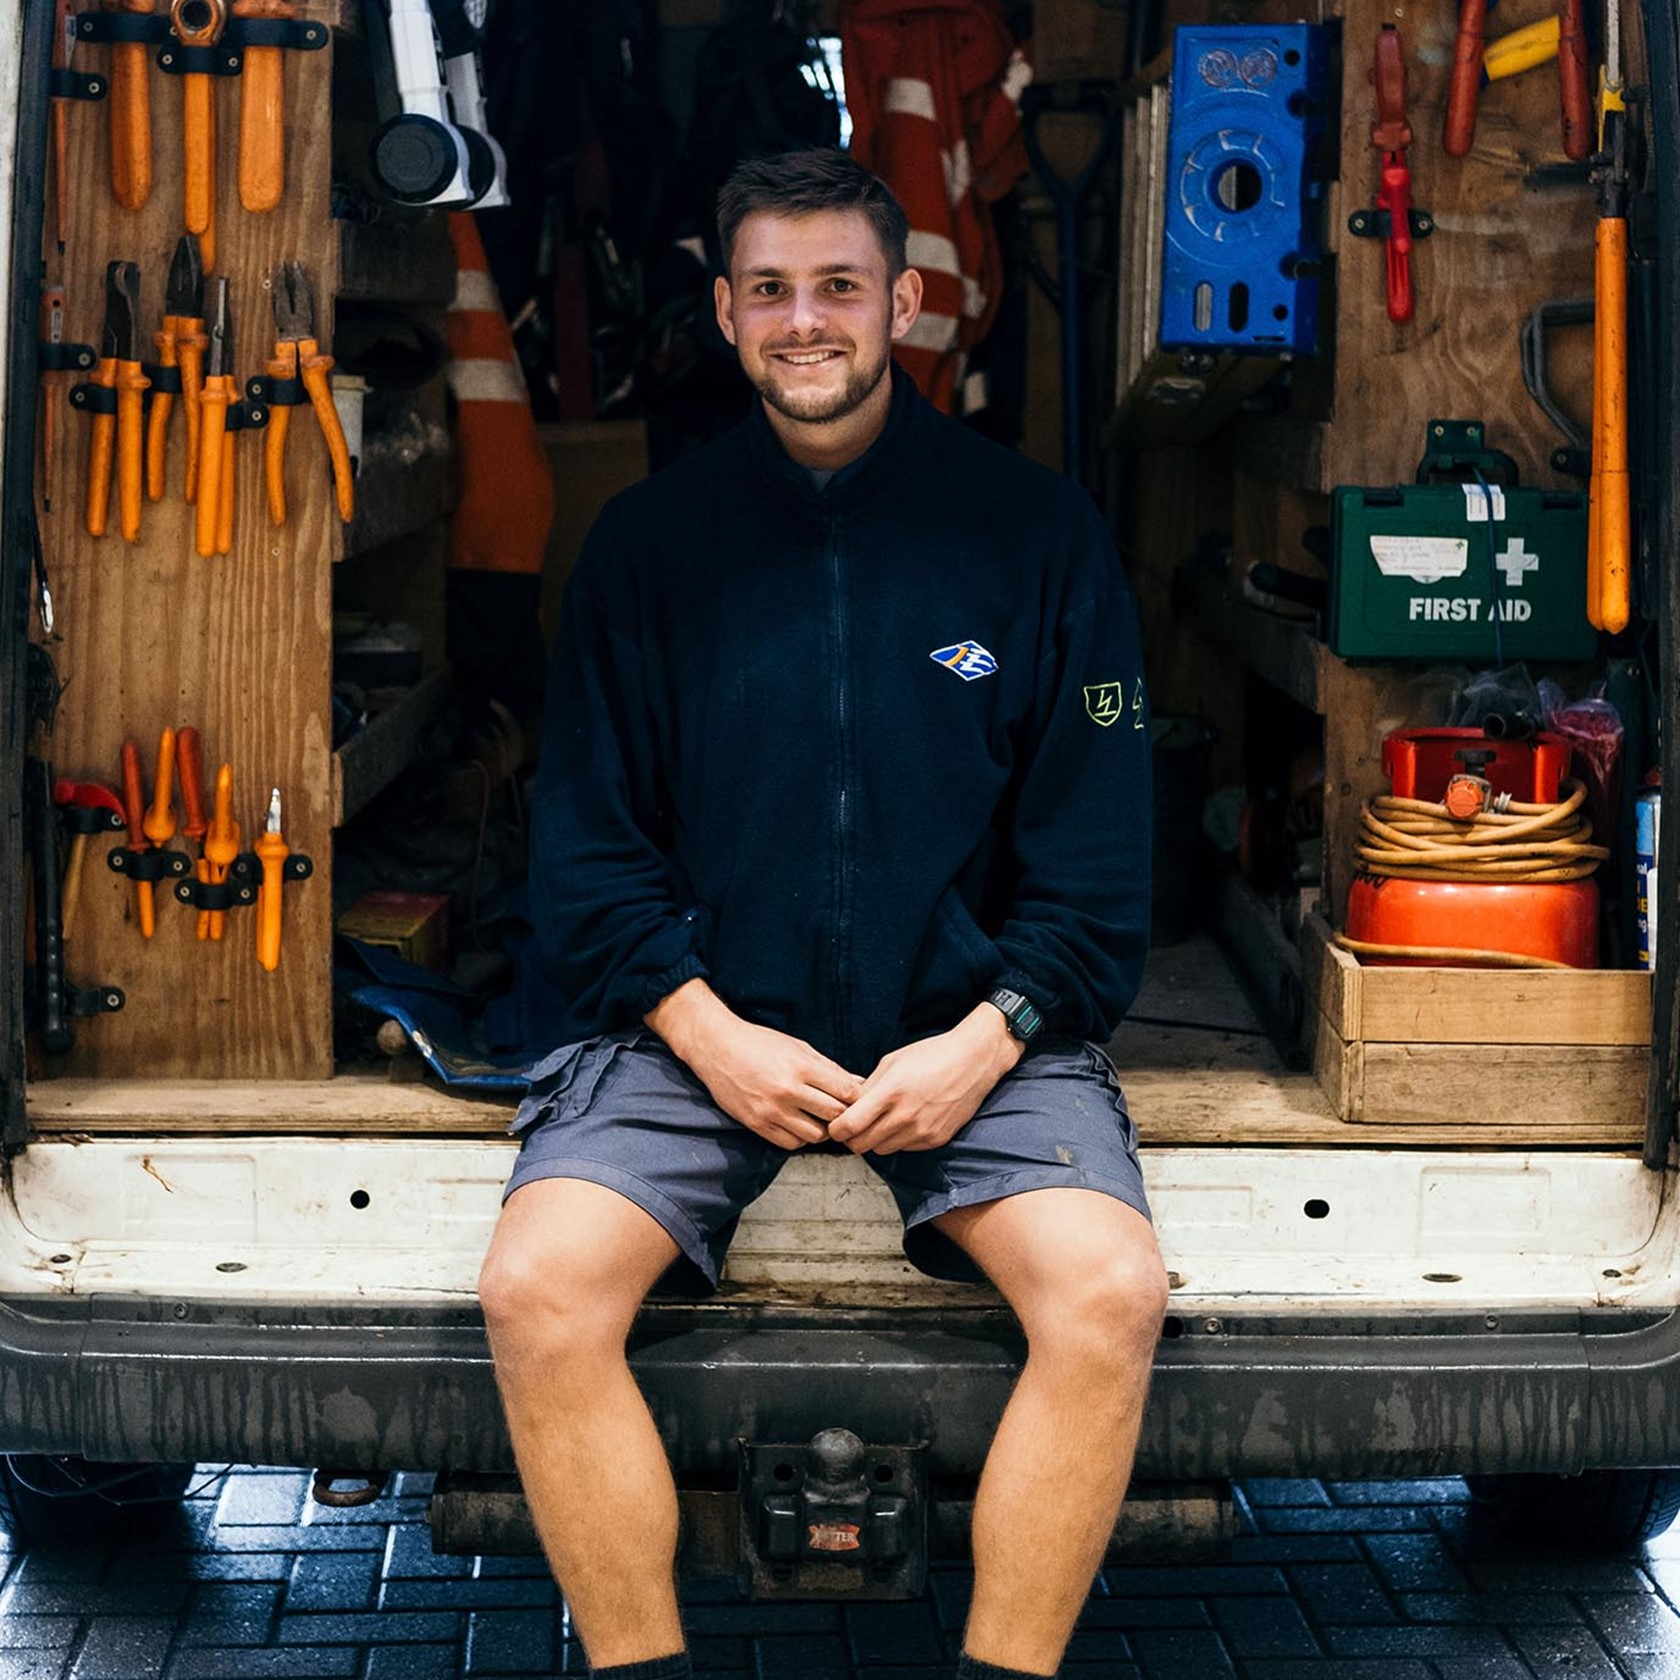 A Jersey Electricity Apprentice sits in the back of a van.